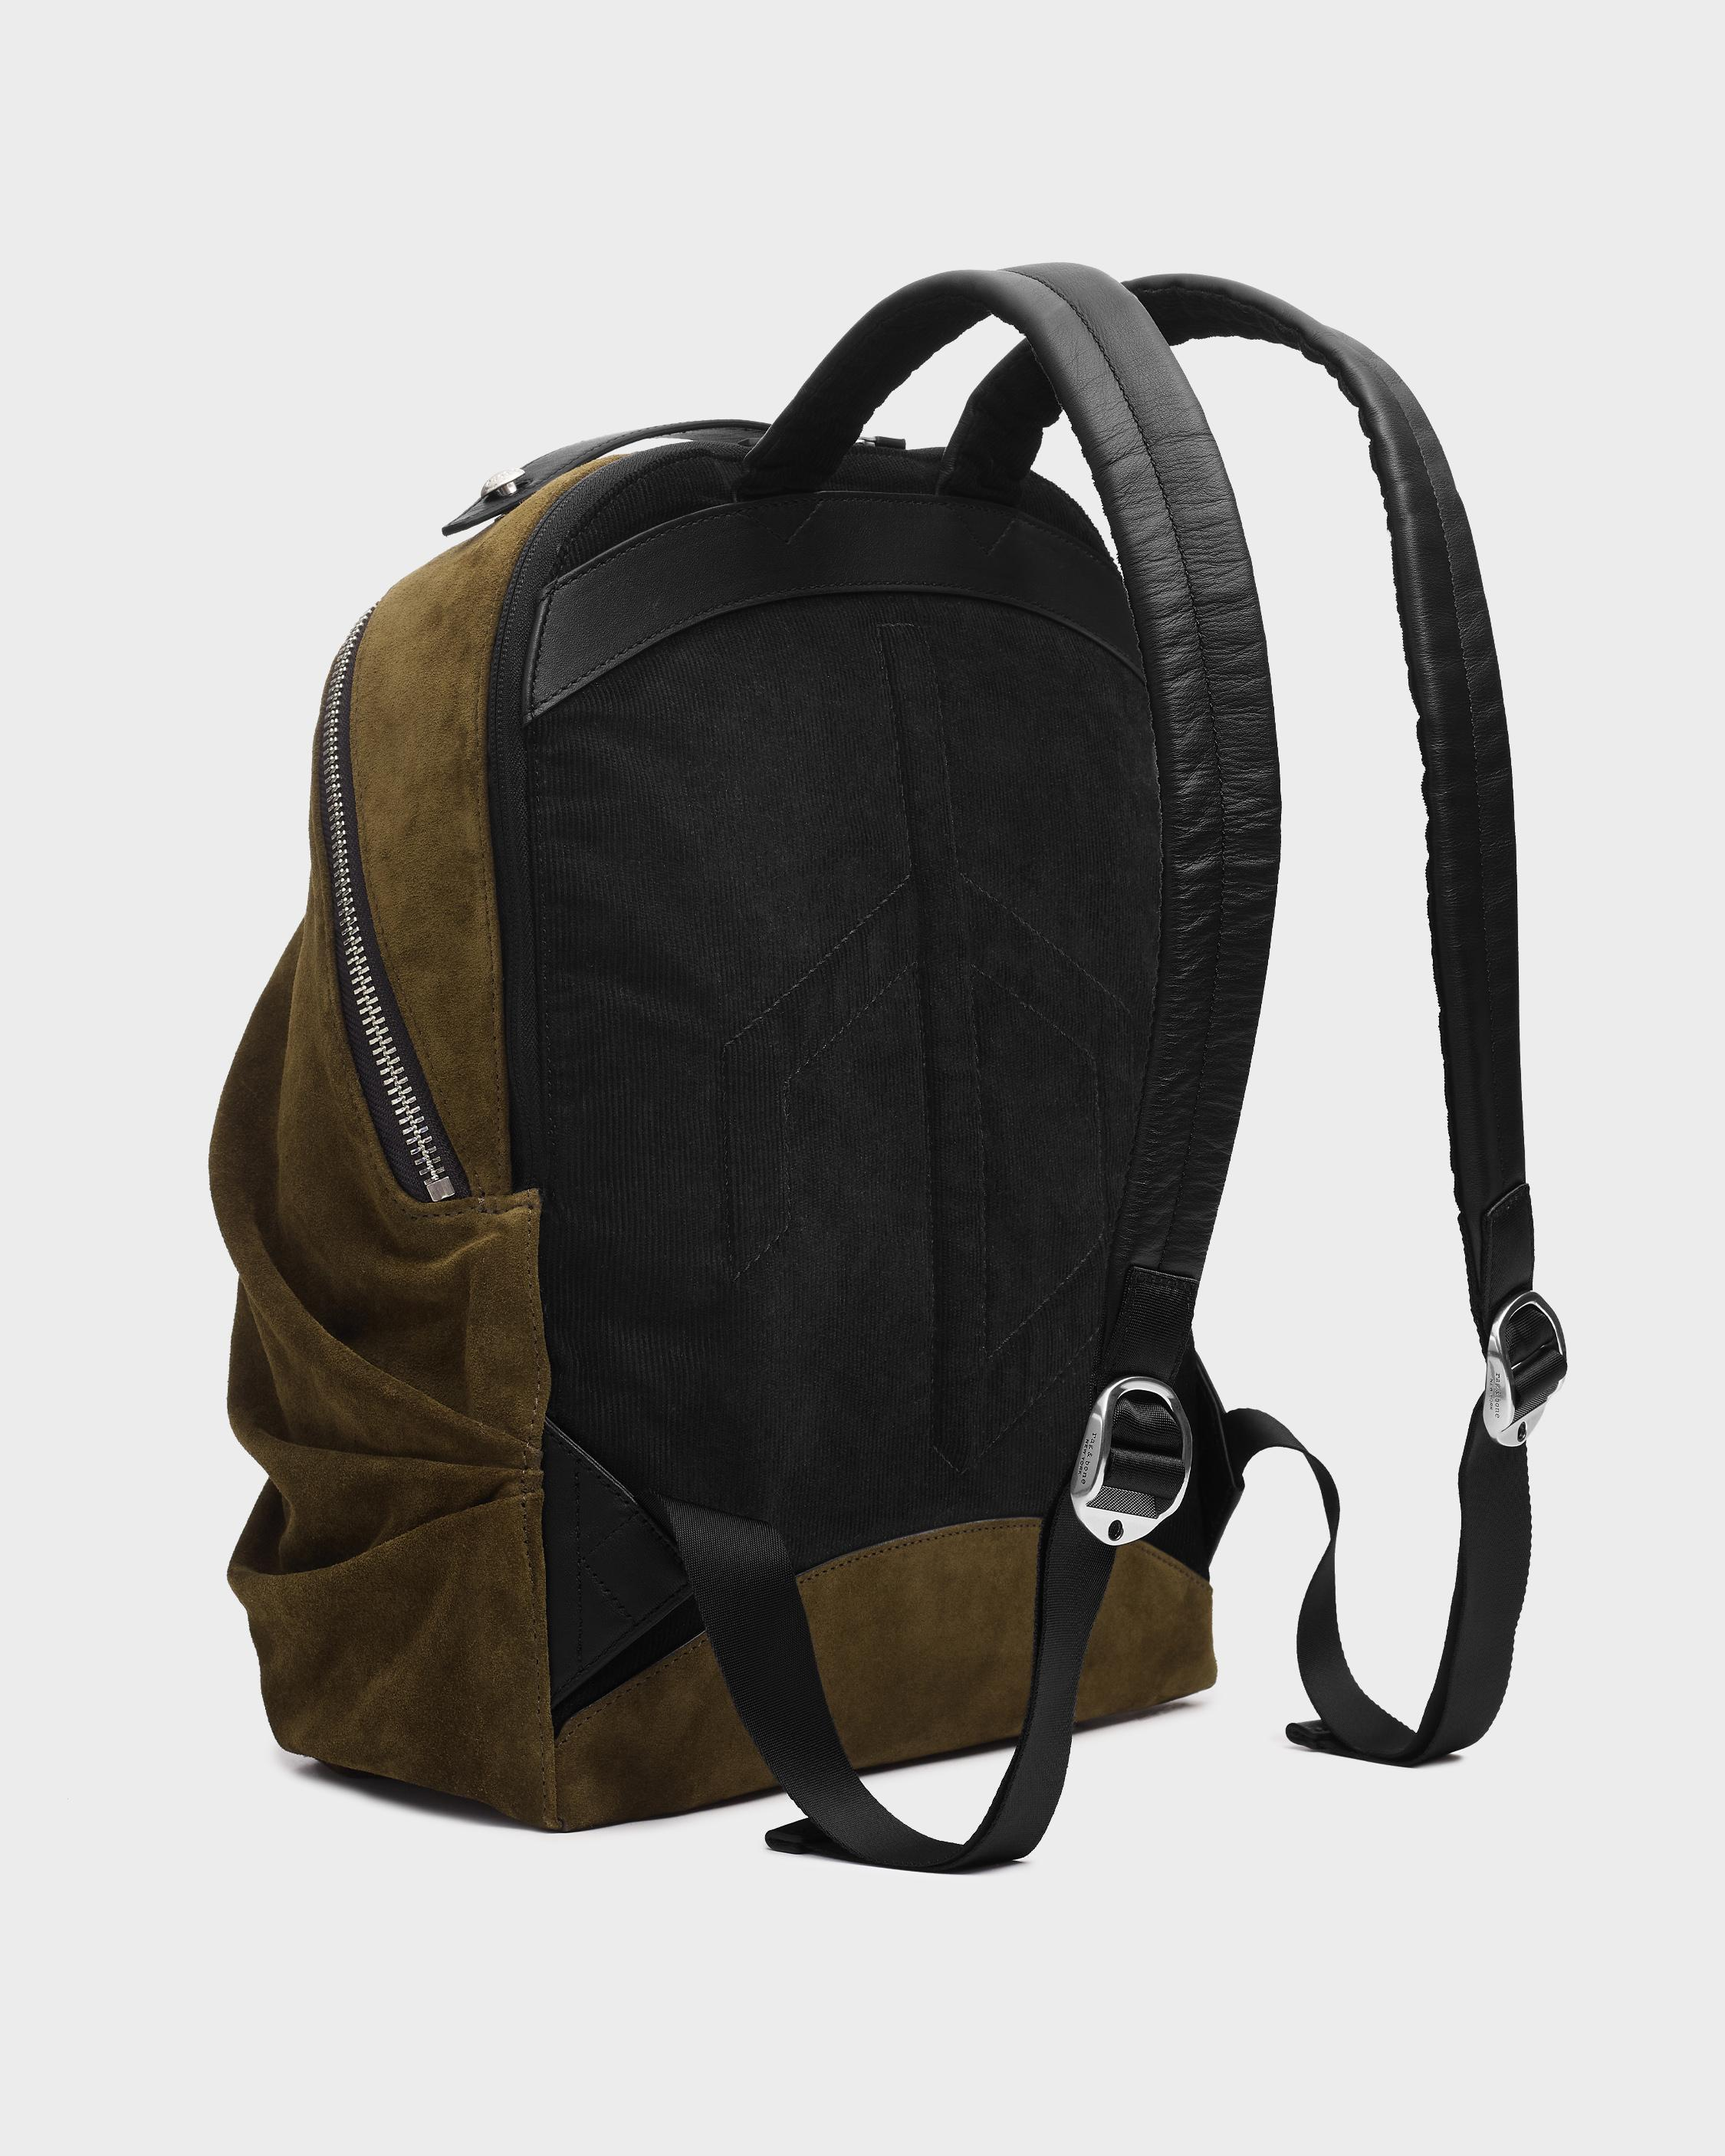 Commuter backpack - suede 1